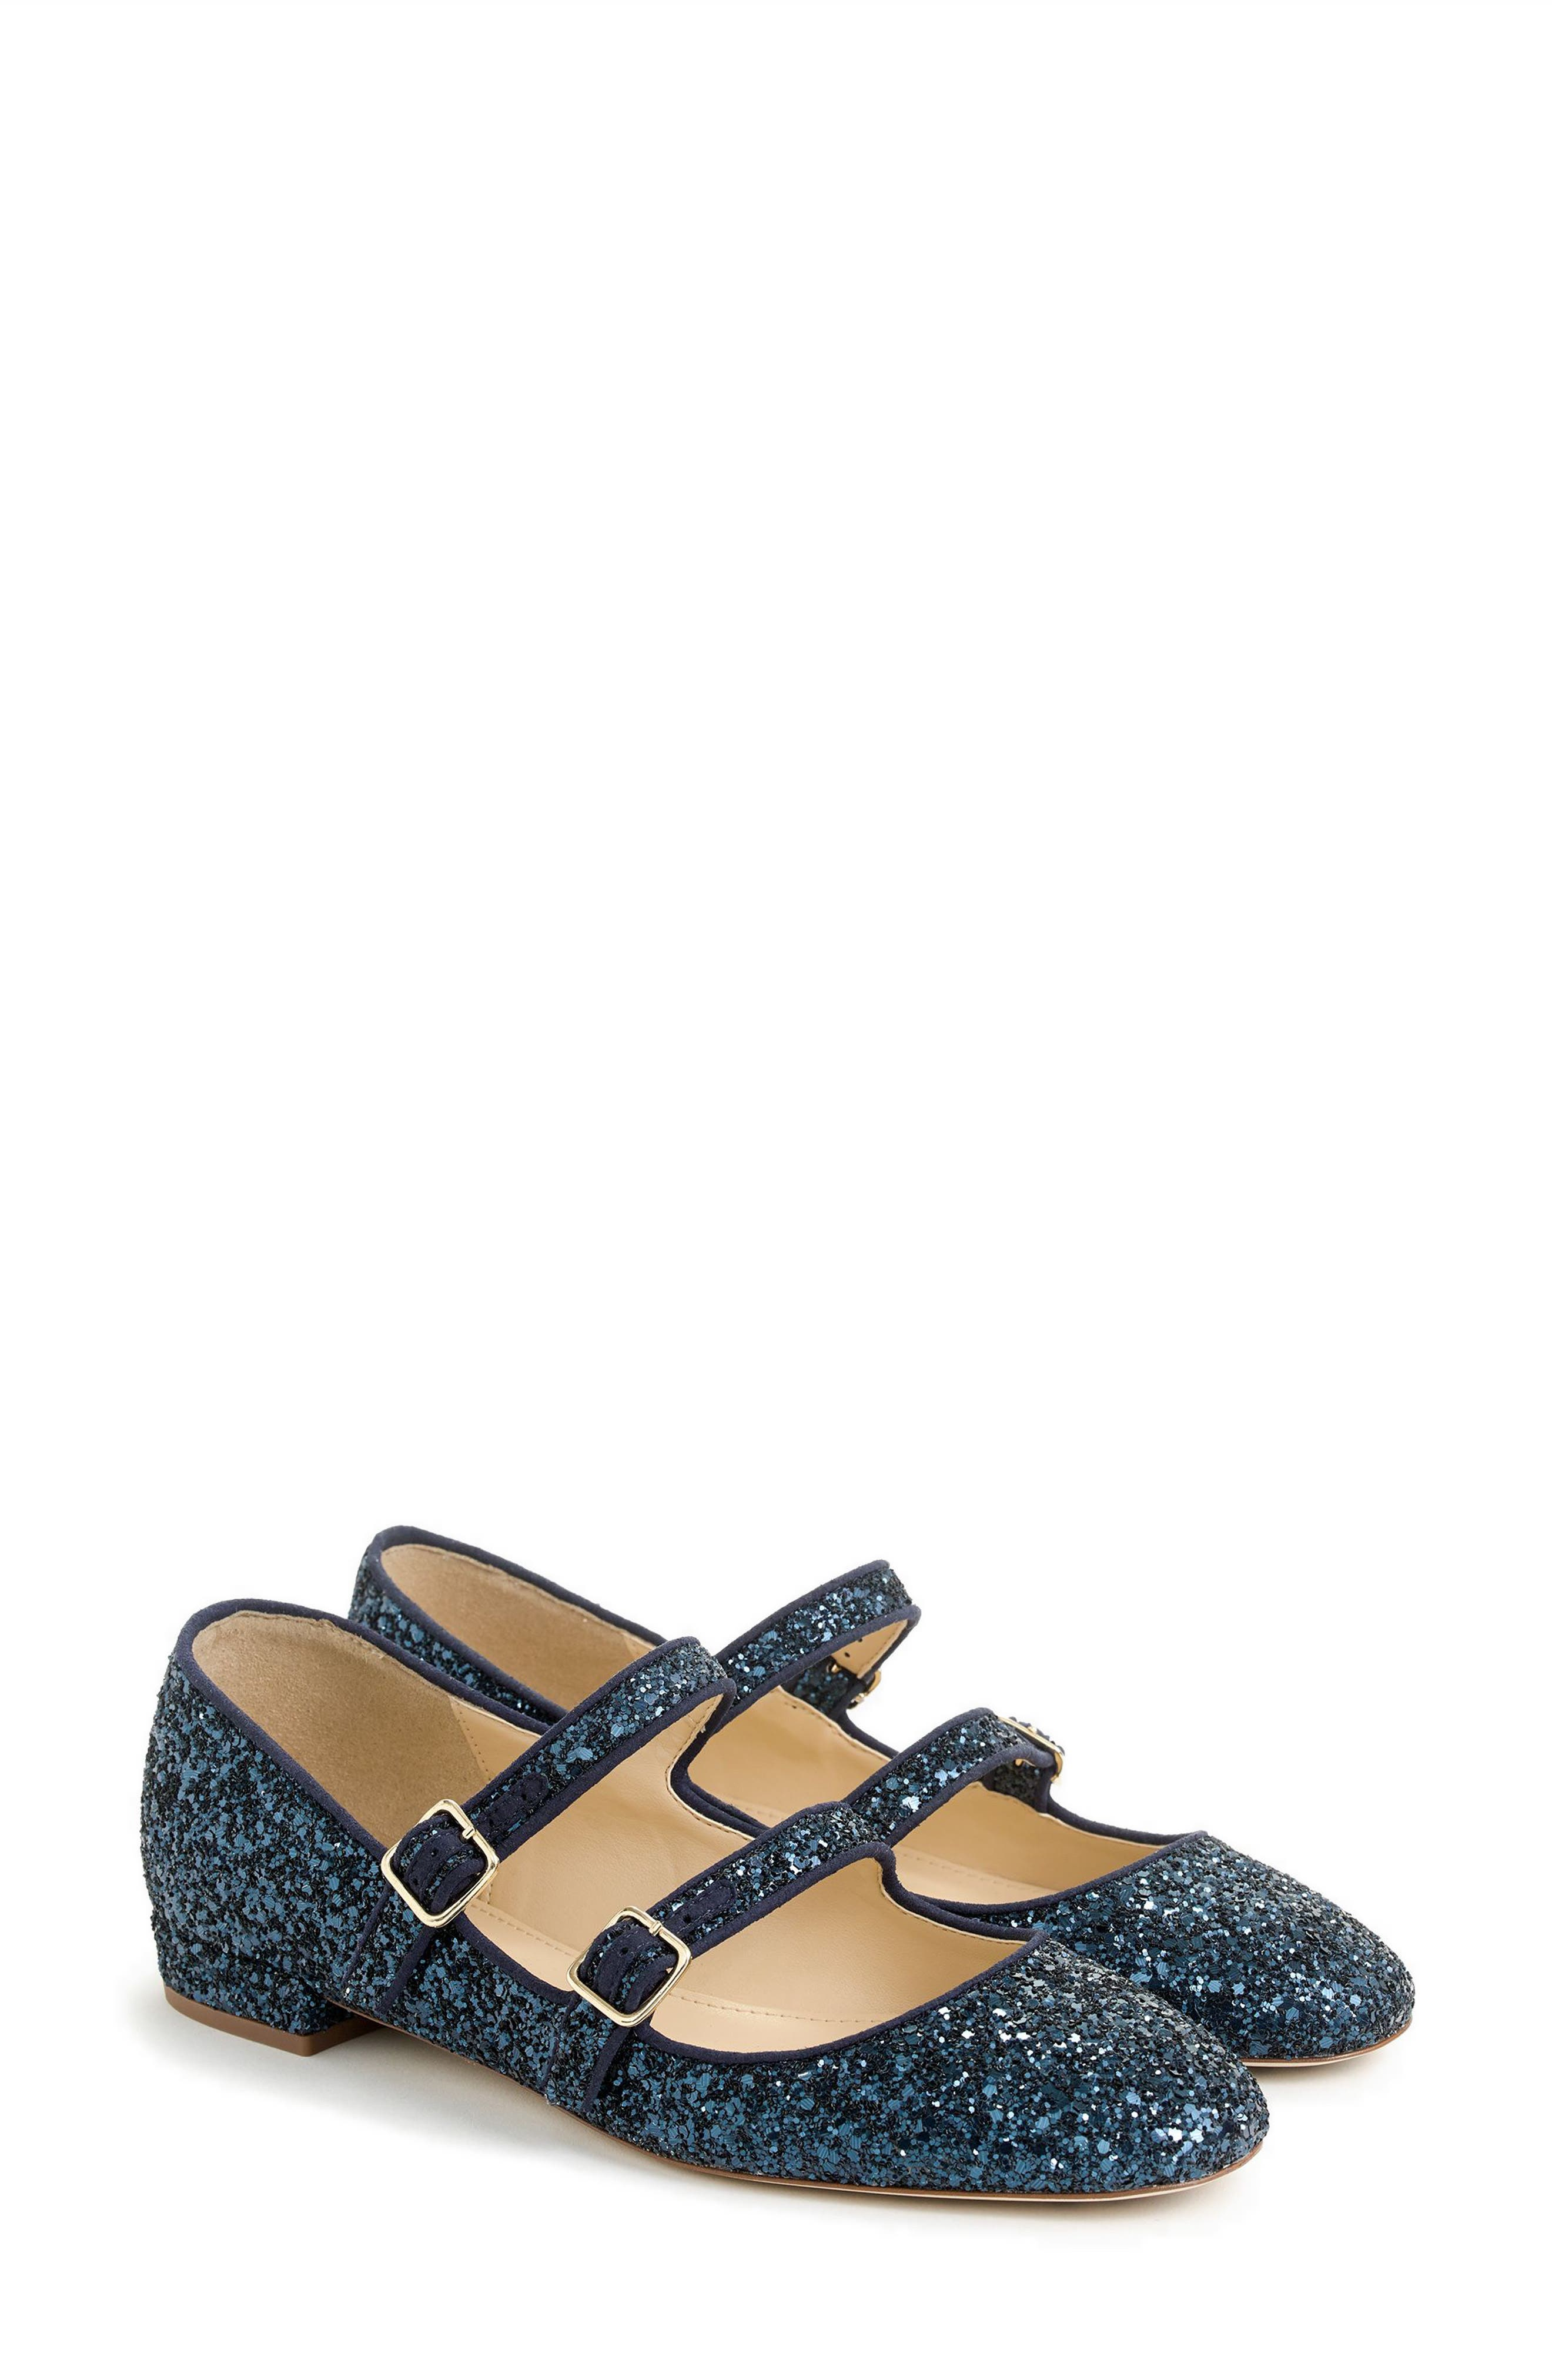 J.Crew Multistrap Mary Jane Flat,                         Main,                         color, Navy Glitter Fabric